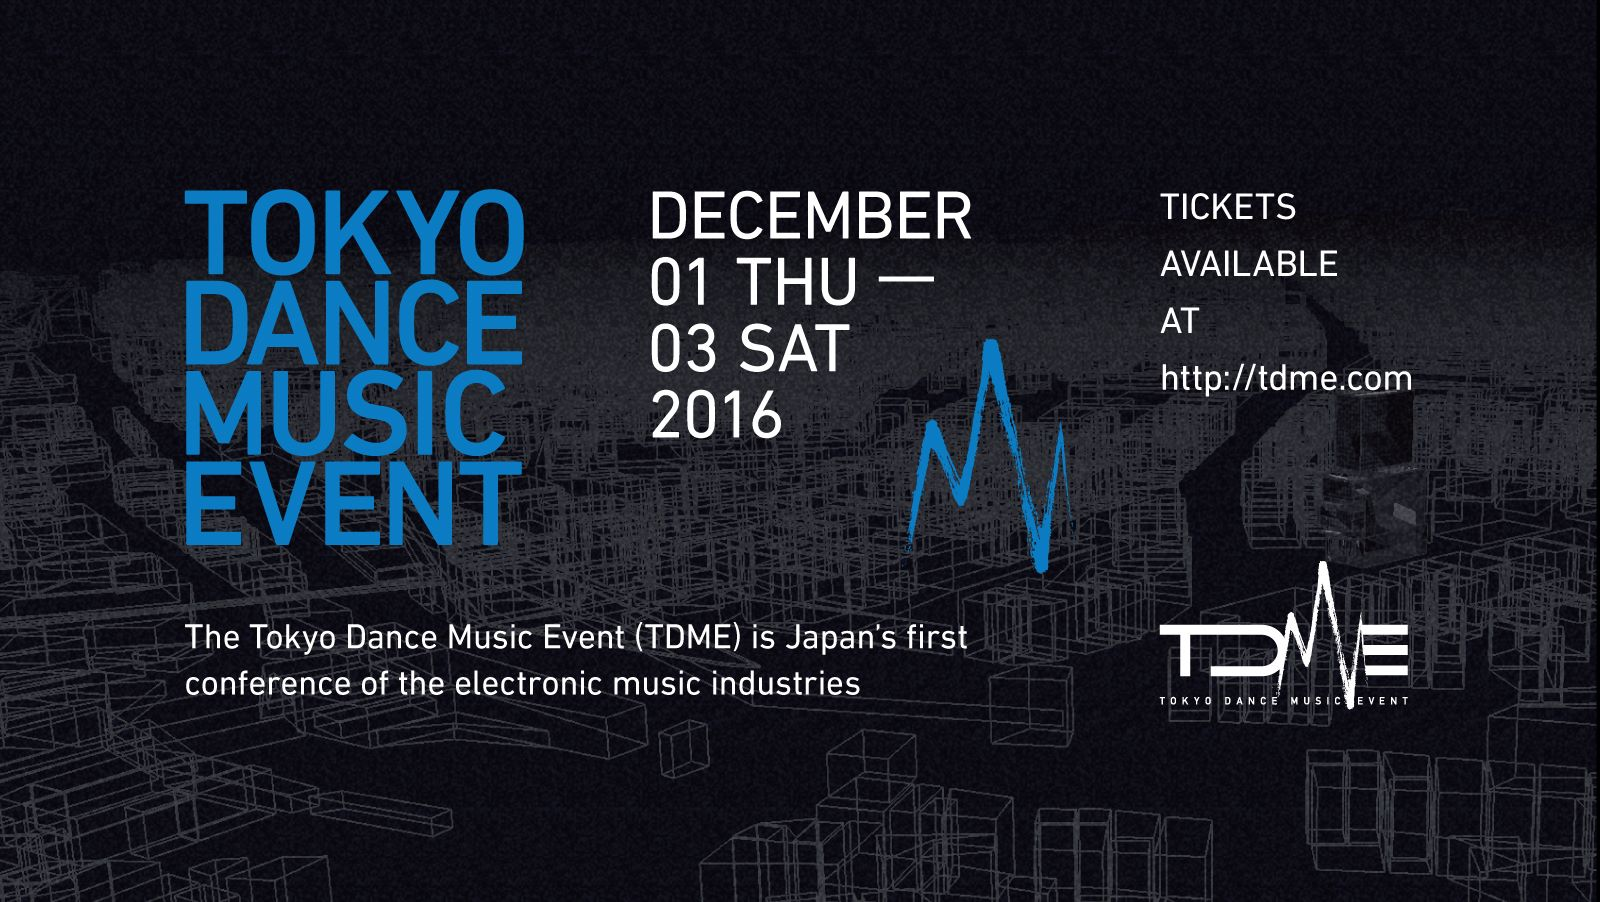 The Japanese Music Market and Tokyo Dance Music Event